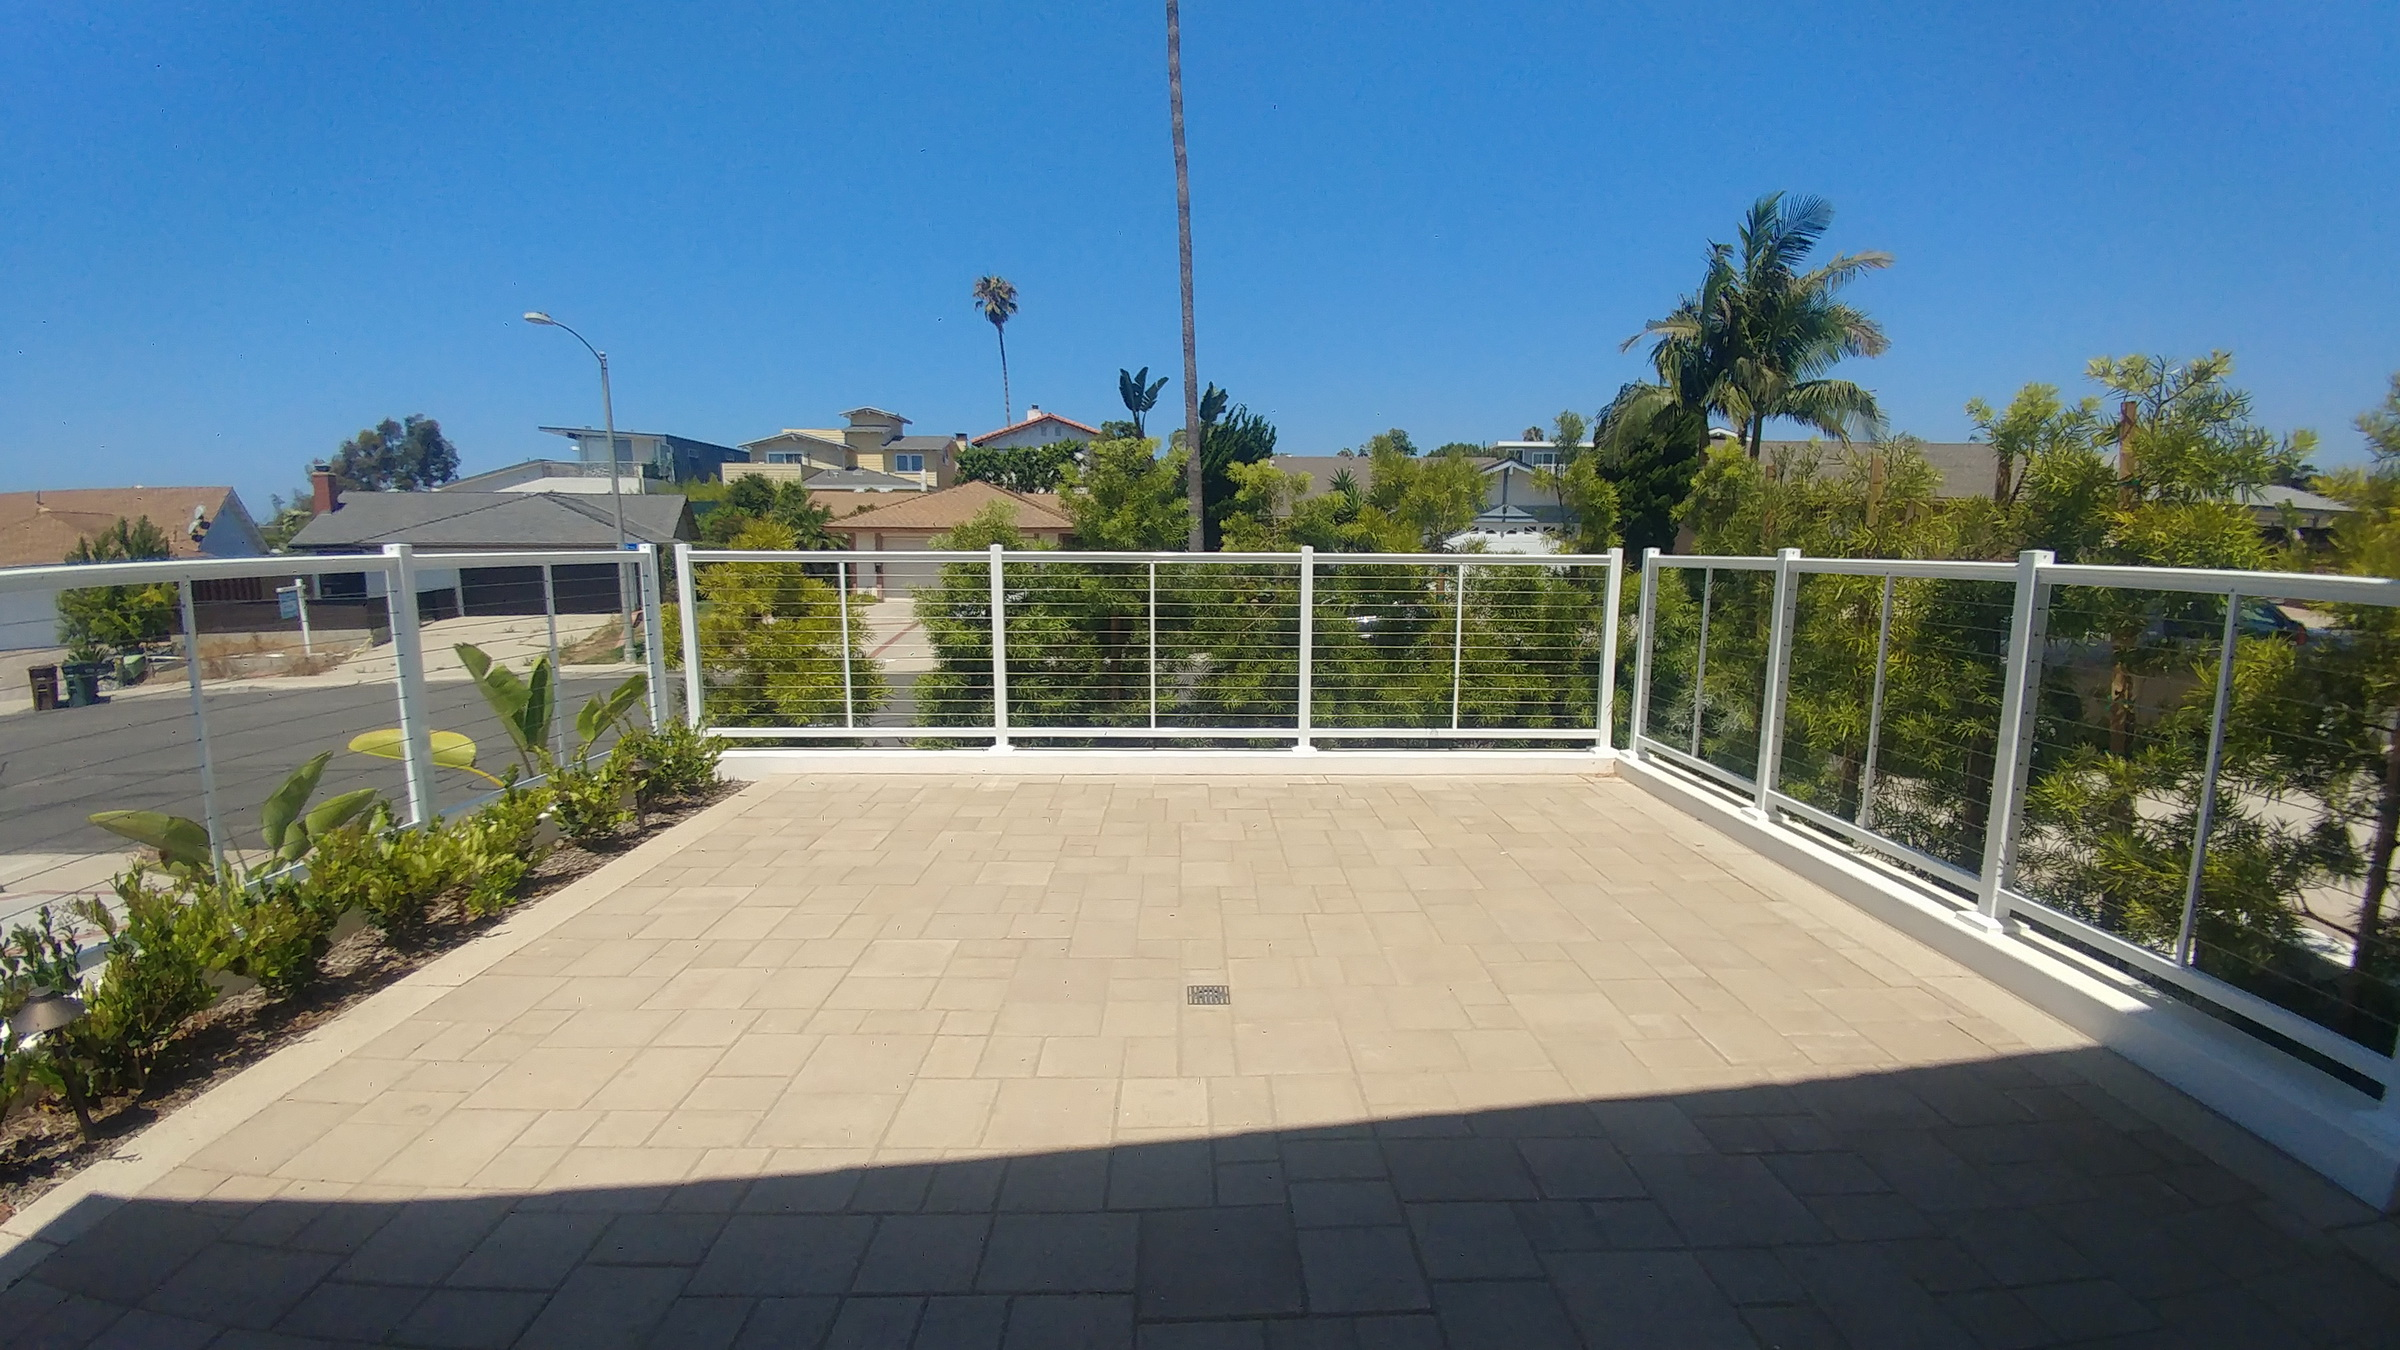 Cable railing and patio paving